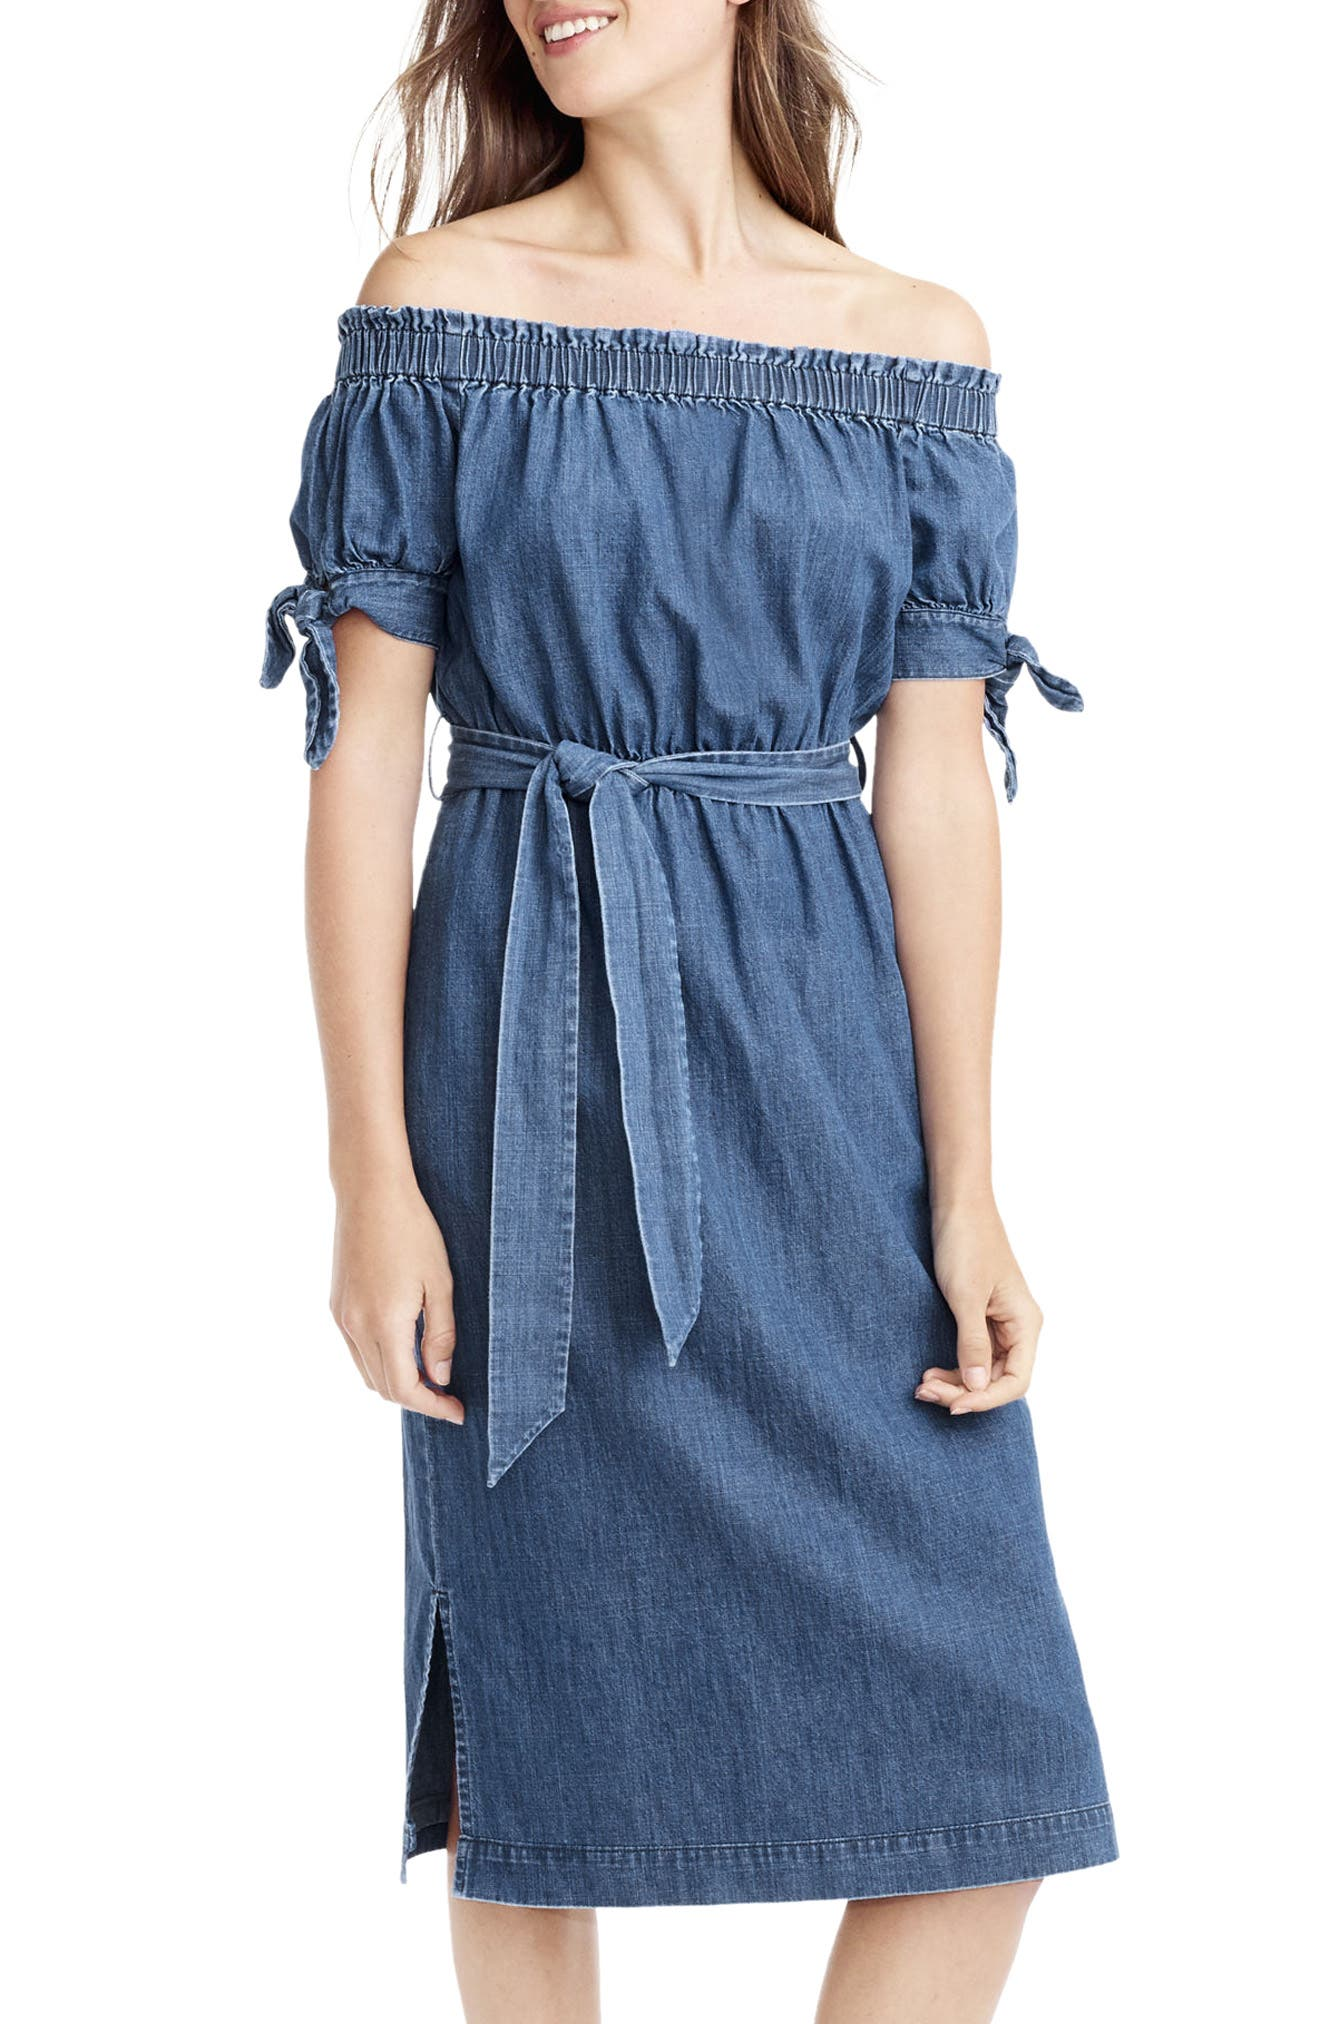 Alternate Image 1 Selected - J.Crew Tie Waist Chambray Off the Shoulder Dress